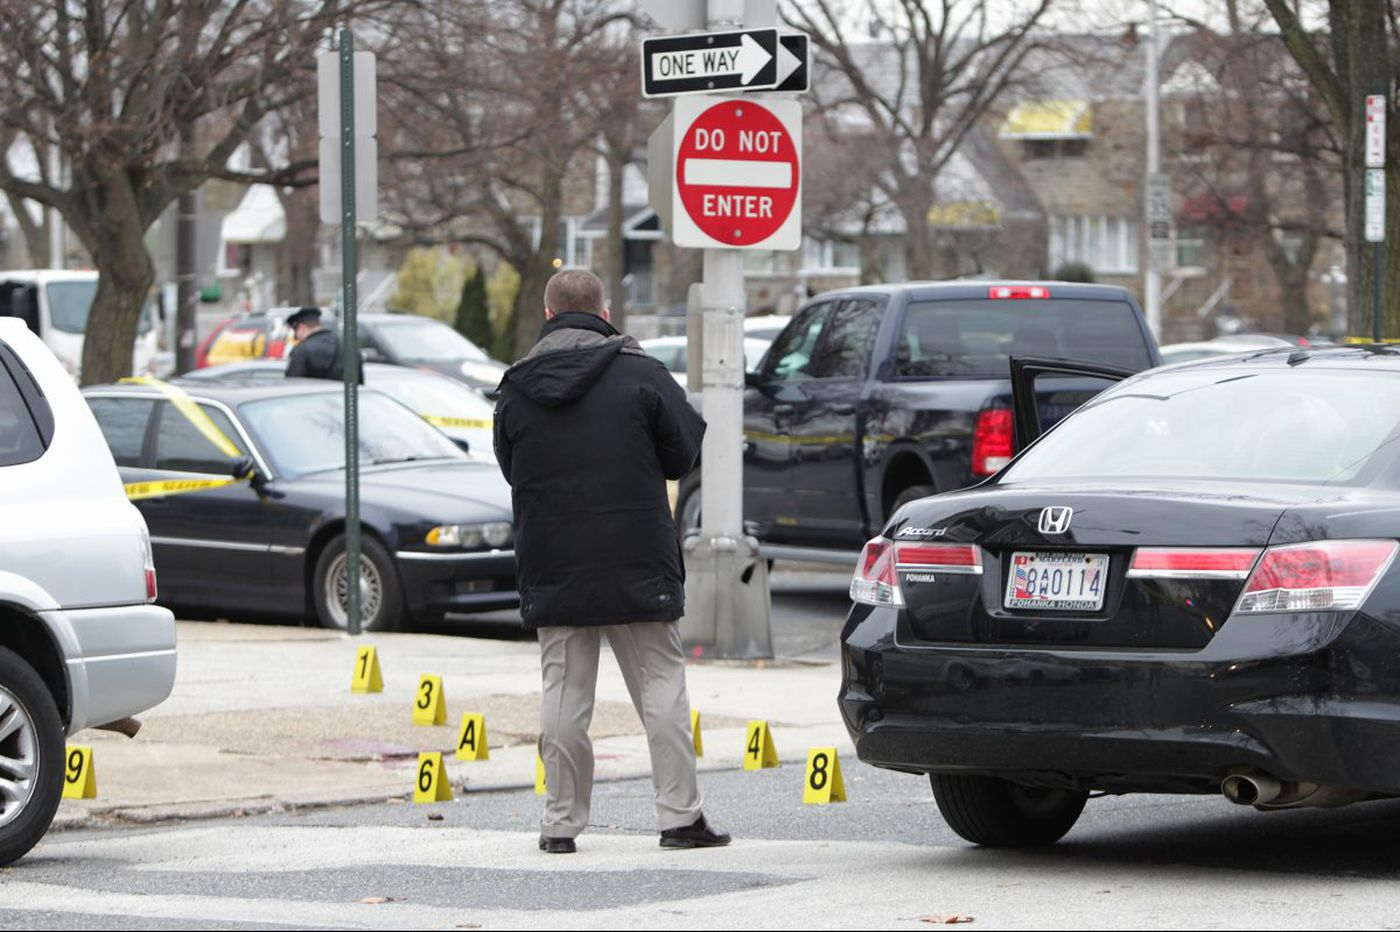 Police ID Virginia man fatally shot by officer in South Philly